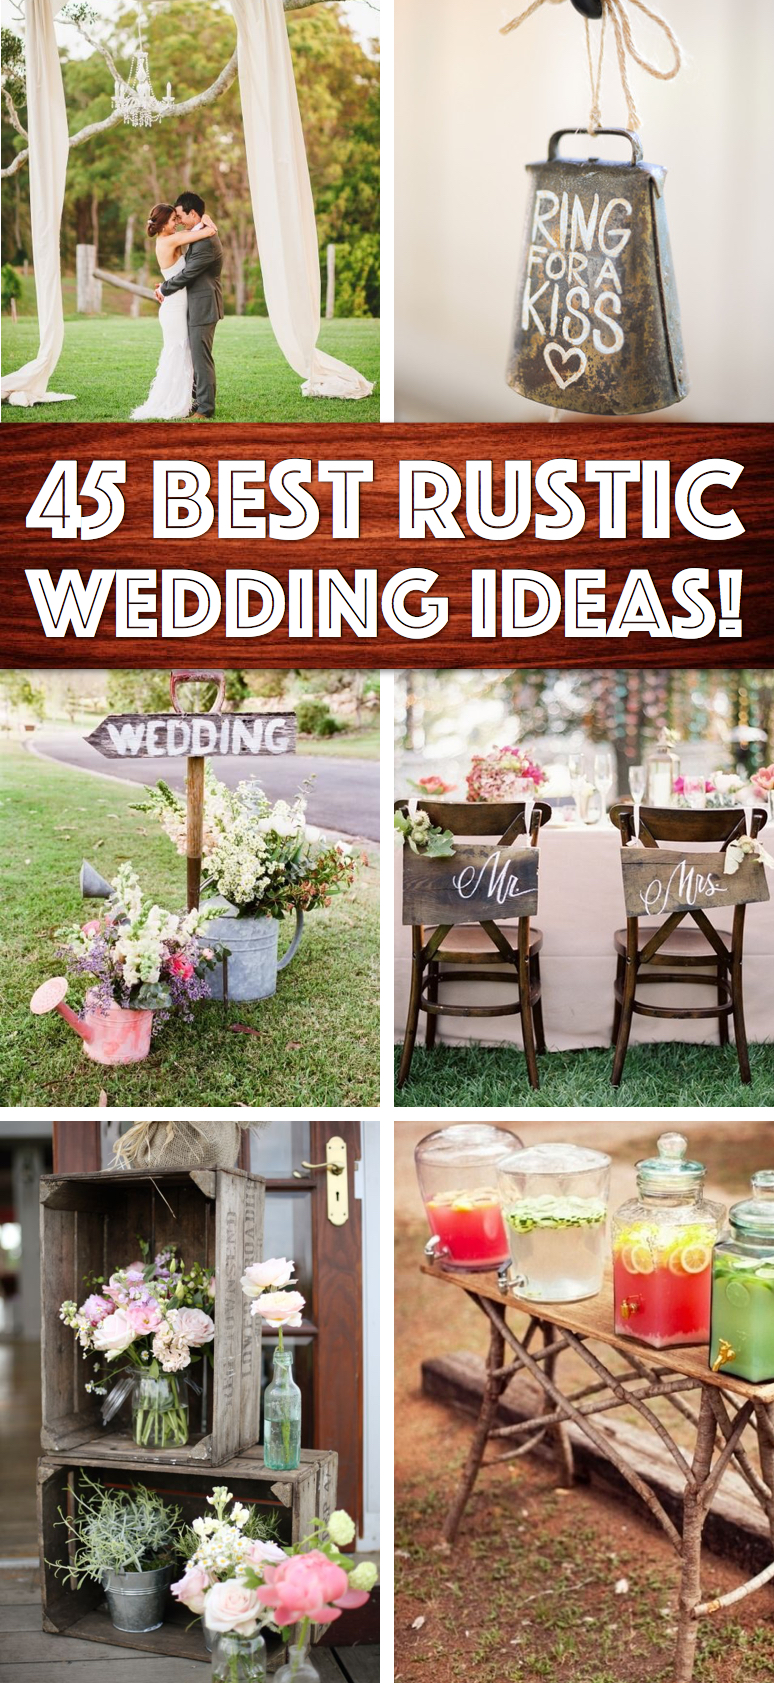 Shine on your wedding day with these breath taking rustic wedding shine on your wedding day with these breath taking rustic wedding ideas solutioingenieria Images